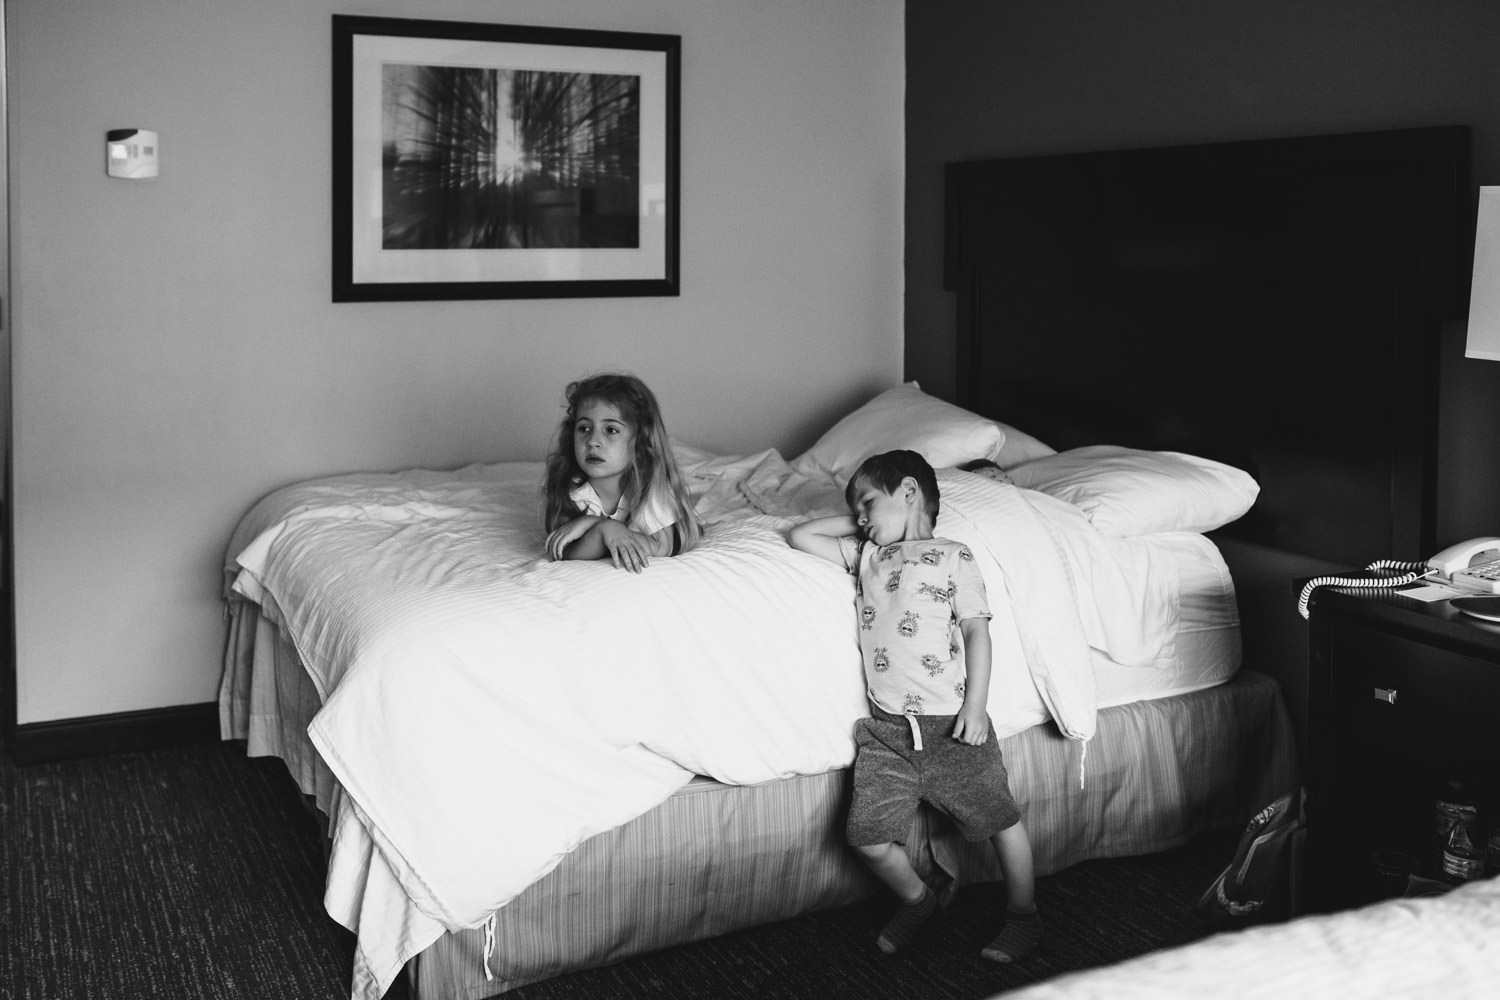 Children watch tv from a hotel room bed.